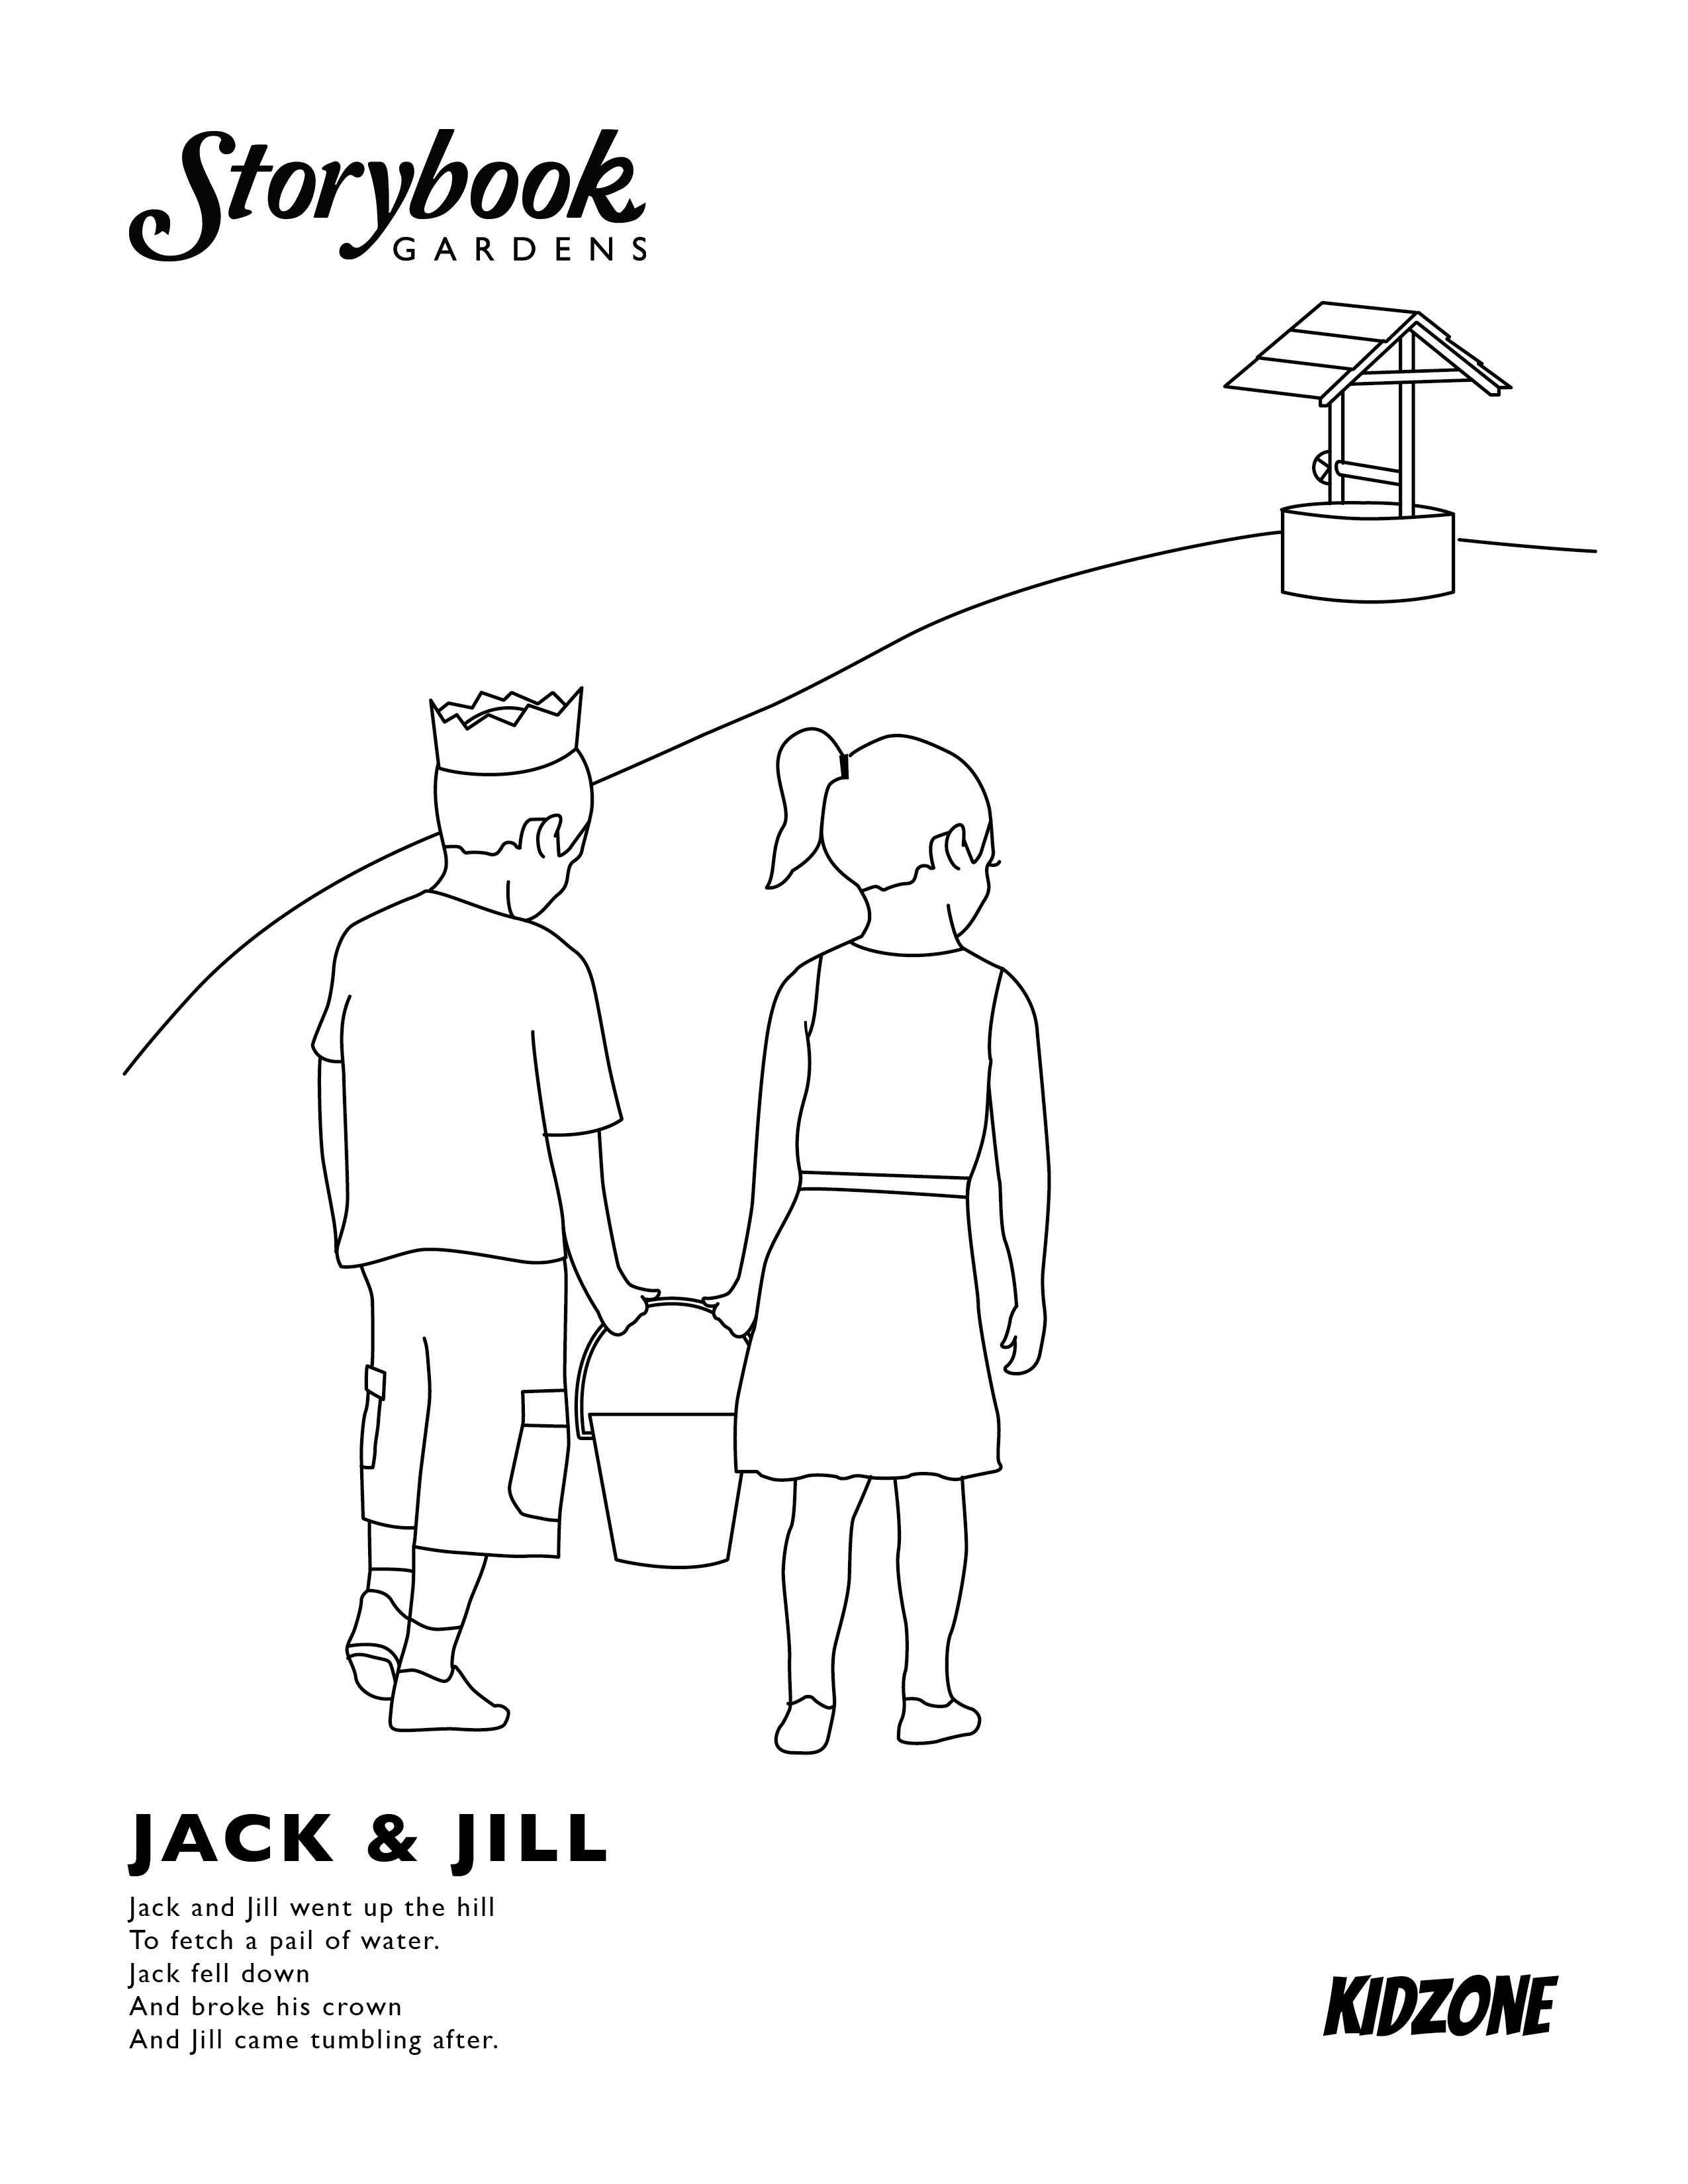 /application/themes/storybook_theme/images/games/colouring_pages_jpg/StorybookGardensColouringPage_JackAndJill.jpg